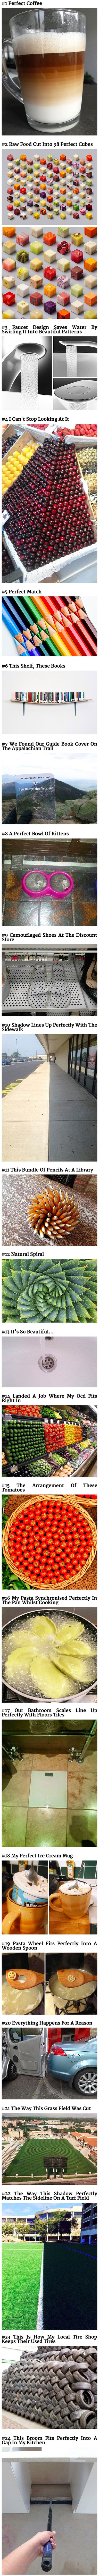 "These photos of symmetry and order are appealing to humans and animals alike. Both in society and in the wild, organisms that are ""more symmetrical"" have a better chance at finding a mate than those who don't. Some speculate that this is one way of identifying a healthy partner."